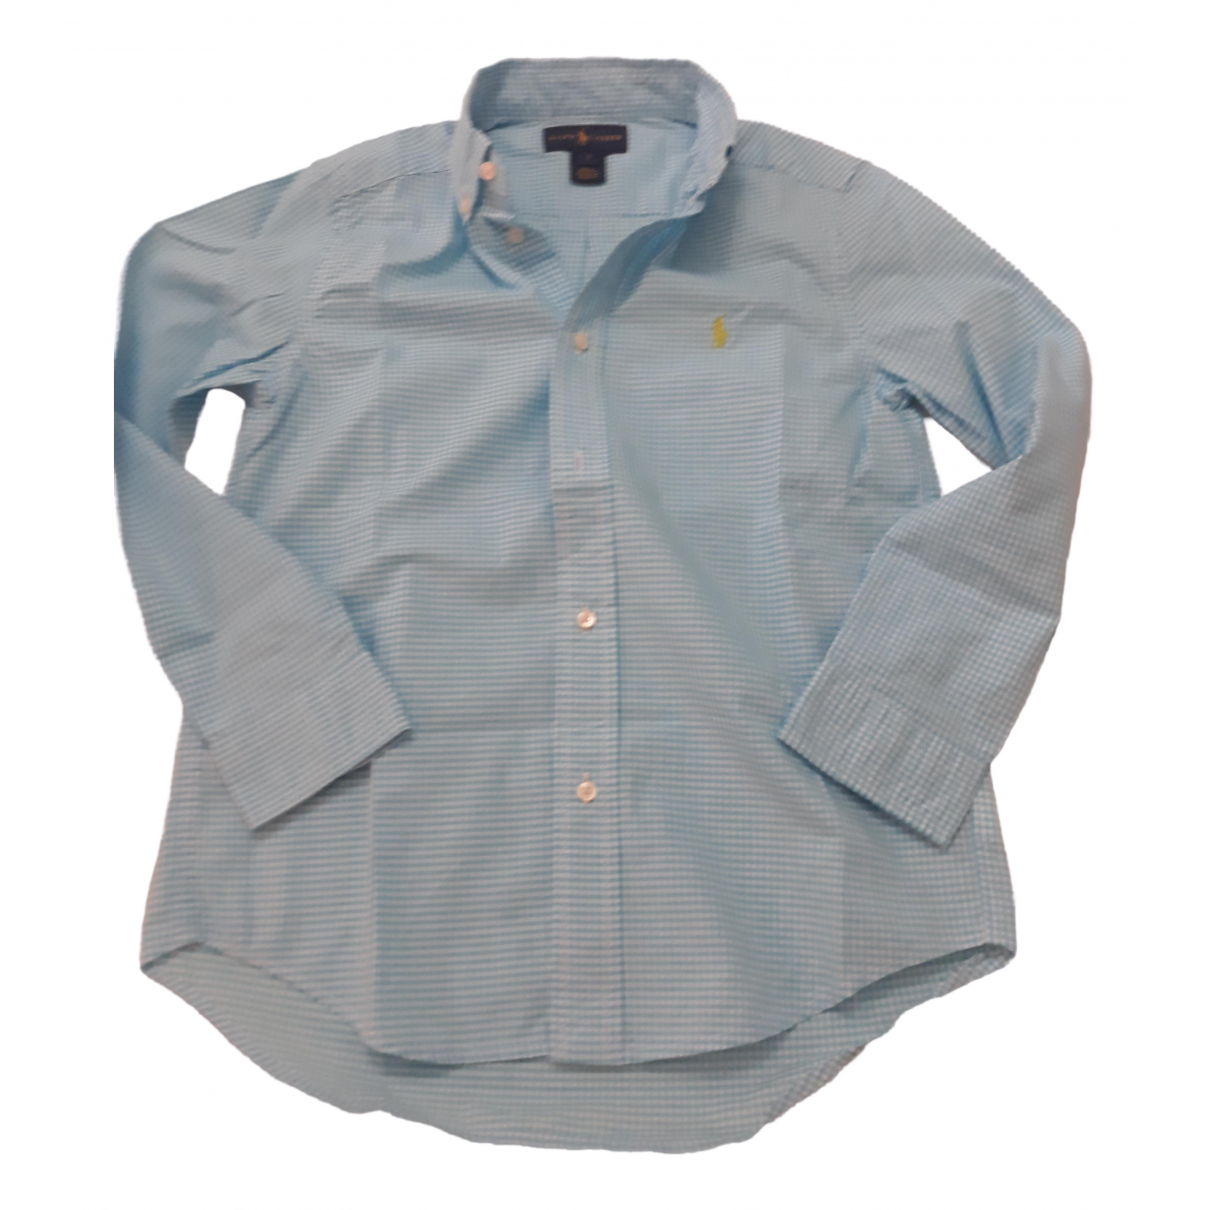 Ralph Lauren \N Turquoise Cotton  top for Kids 8 years - up to 128cm FR